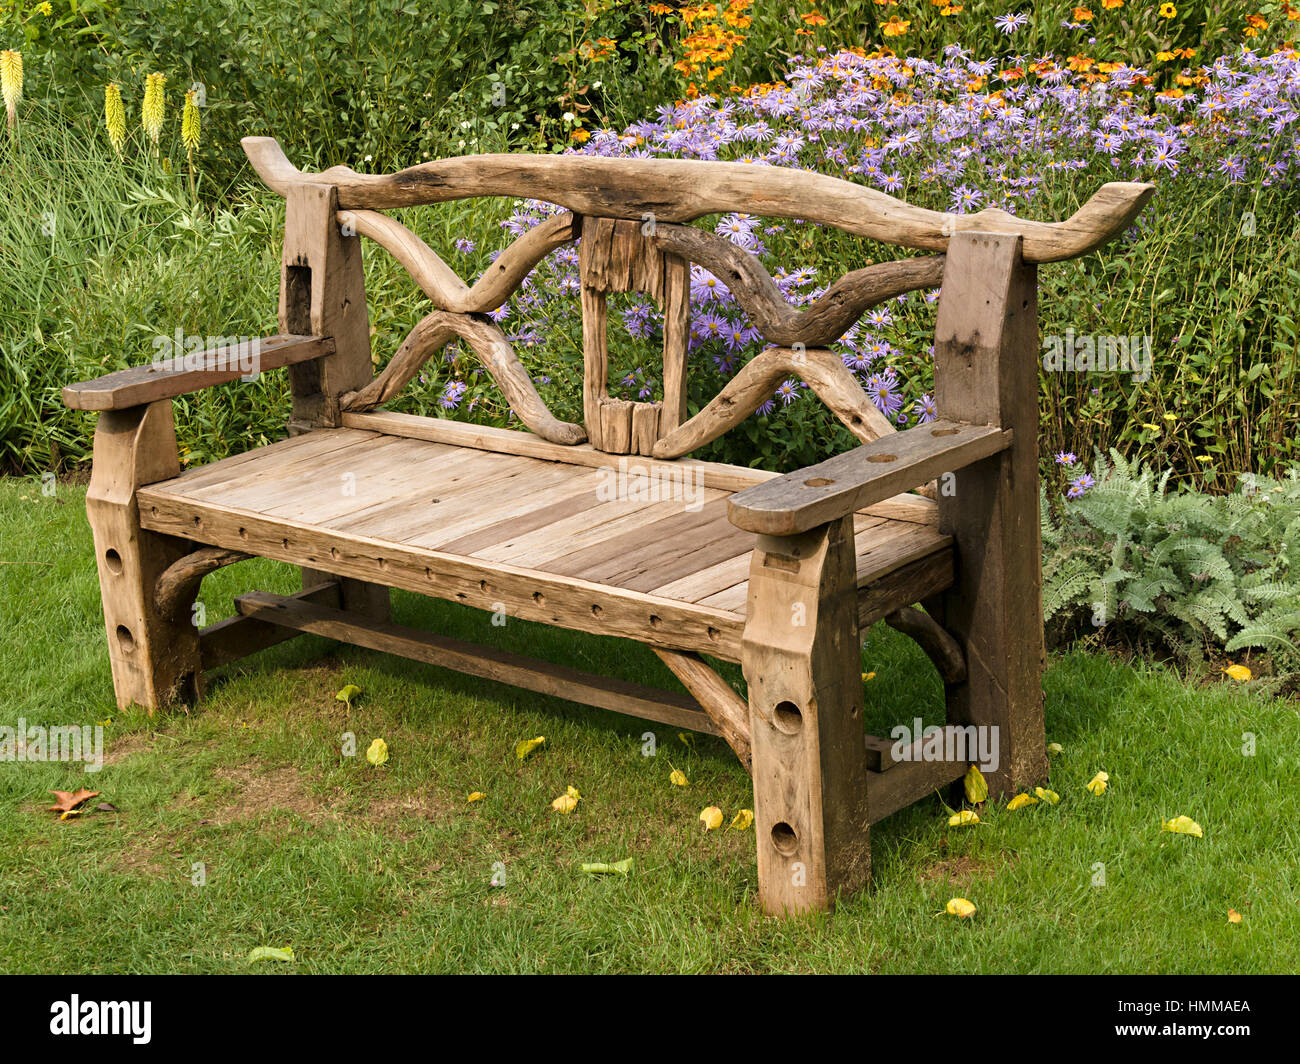 Ornate, Rustic, Wooden Garden Bench Seat Made From Recycled Wooden Parts,  In Front Of Lower Beds, Coton Manor Gardens, Northamptonshire, England, UK